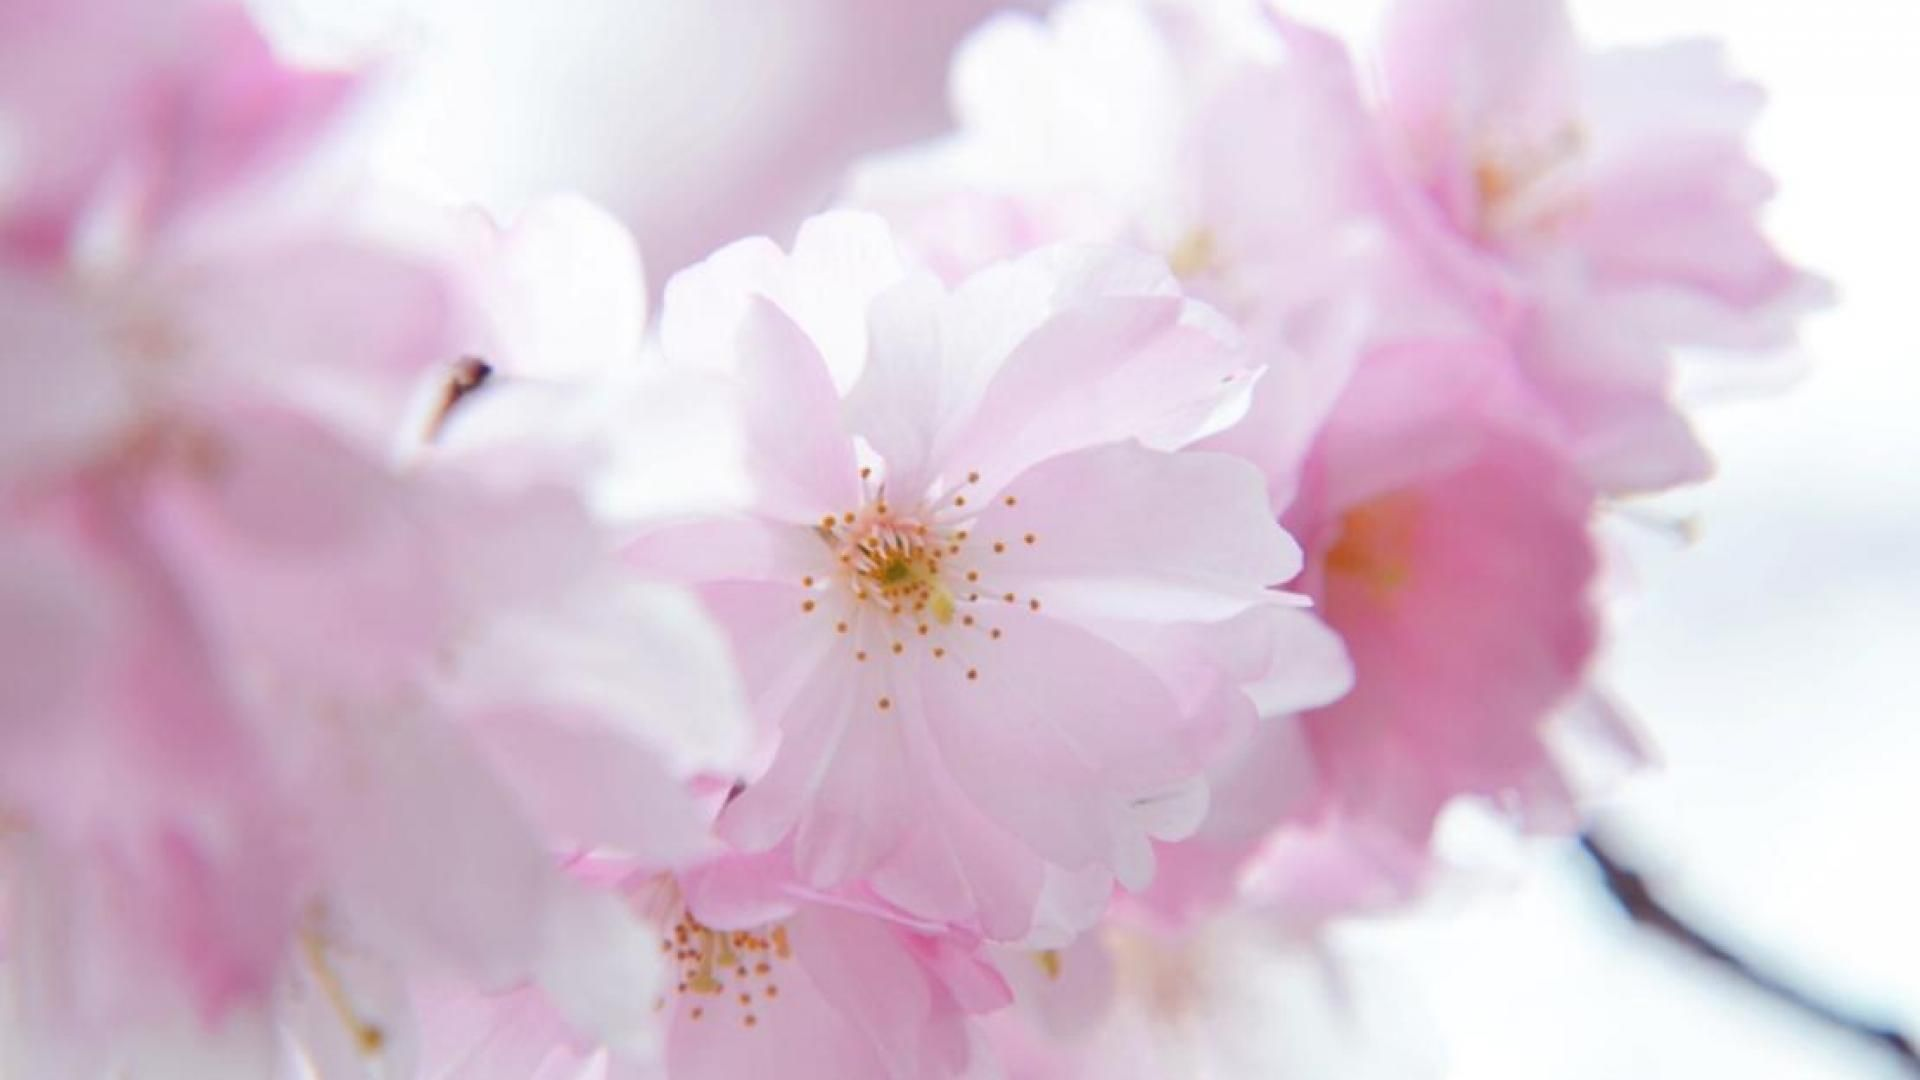 Cherry blossom white flowers branch close up hd wallpaper zoomwalls - Cherry Blossom White Flowers Branch Close Up Hd Wallpaper Zoomwalls 6